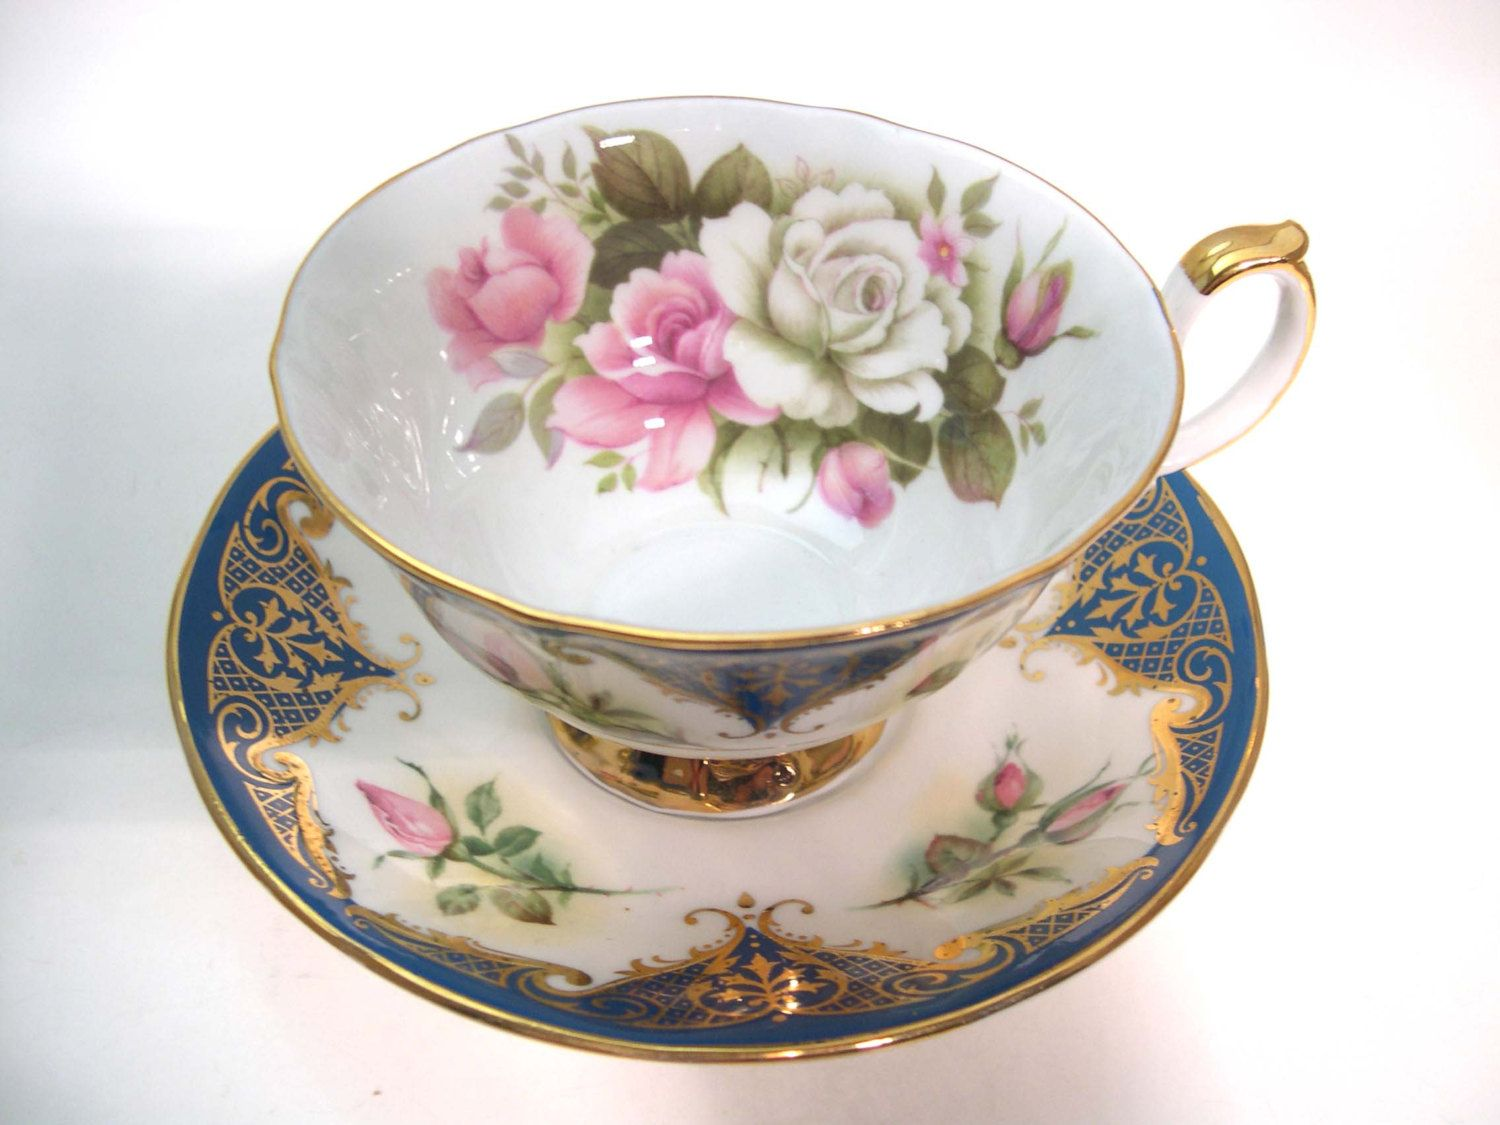 Royal albert bone china tea cup amp saucer winsome pattern ebay - Rare Elizabethan Staffordshire Tea Cup And Saucer Dark Blue Tea Cup Set With